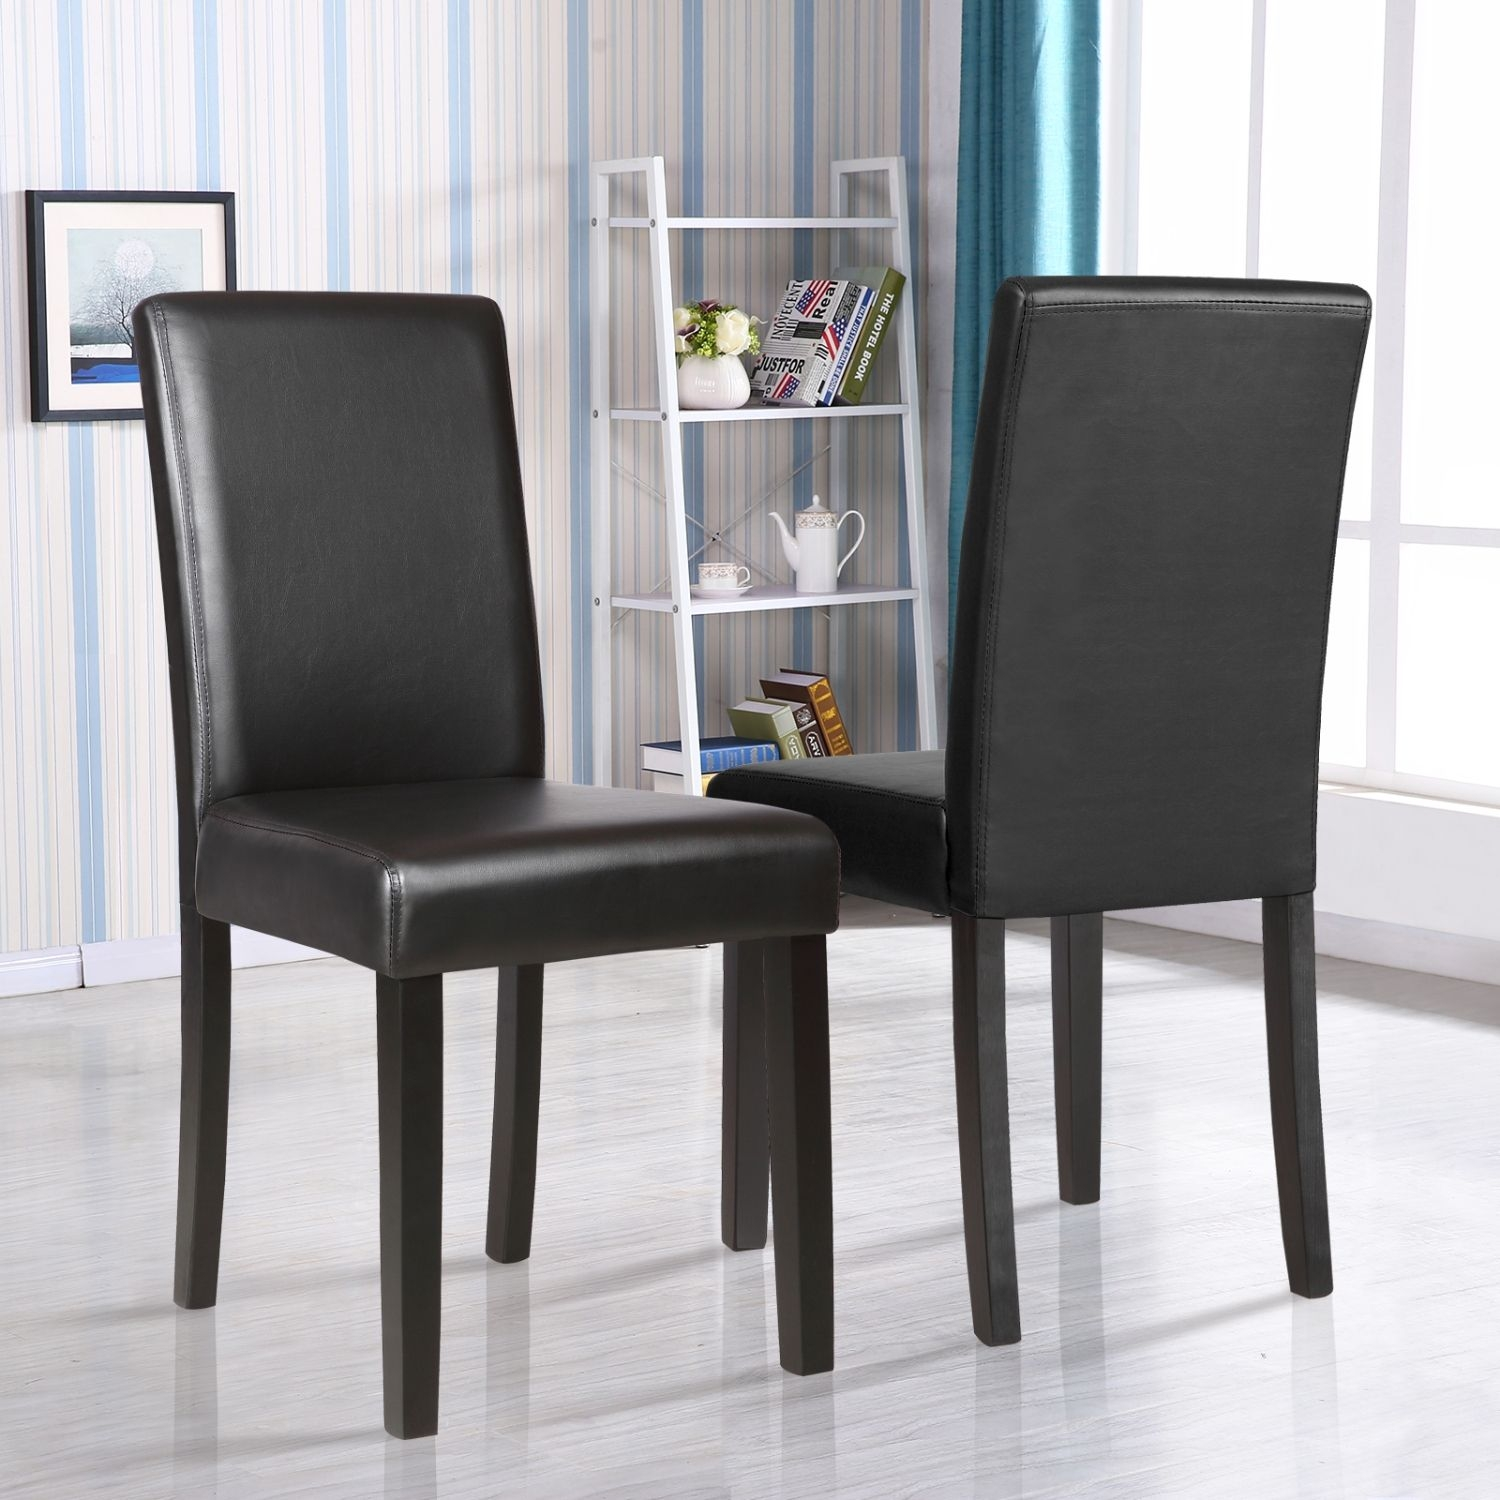 Set Of 2 Kitchen Dinette Dining Room Chair Elegant Design Black Leather Backrest 603658819385  Ebay